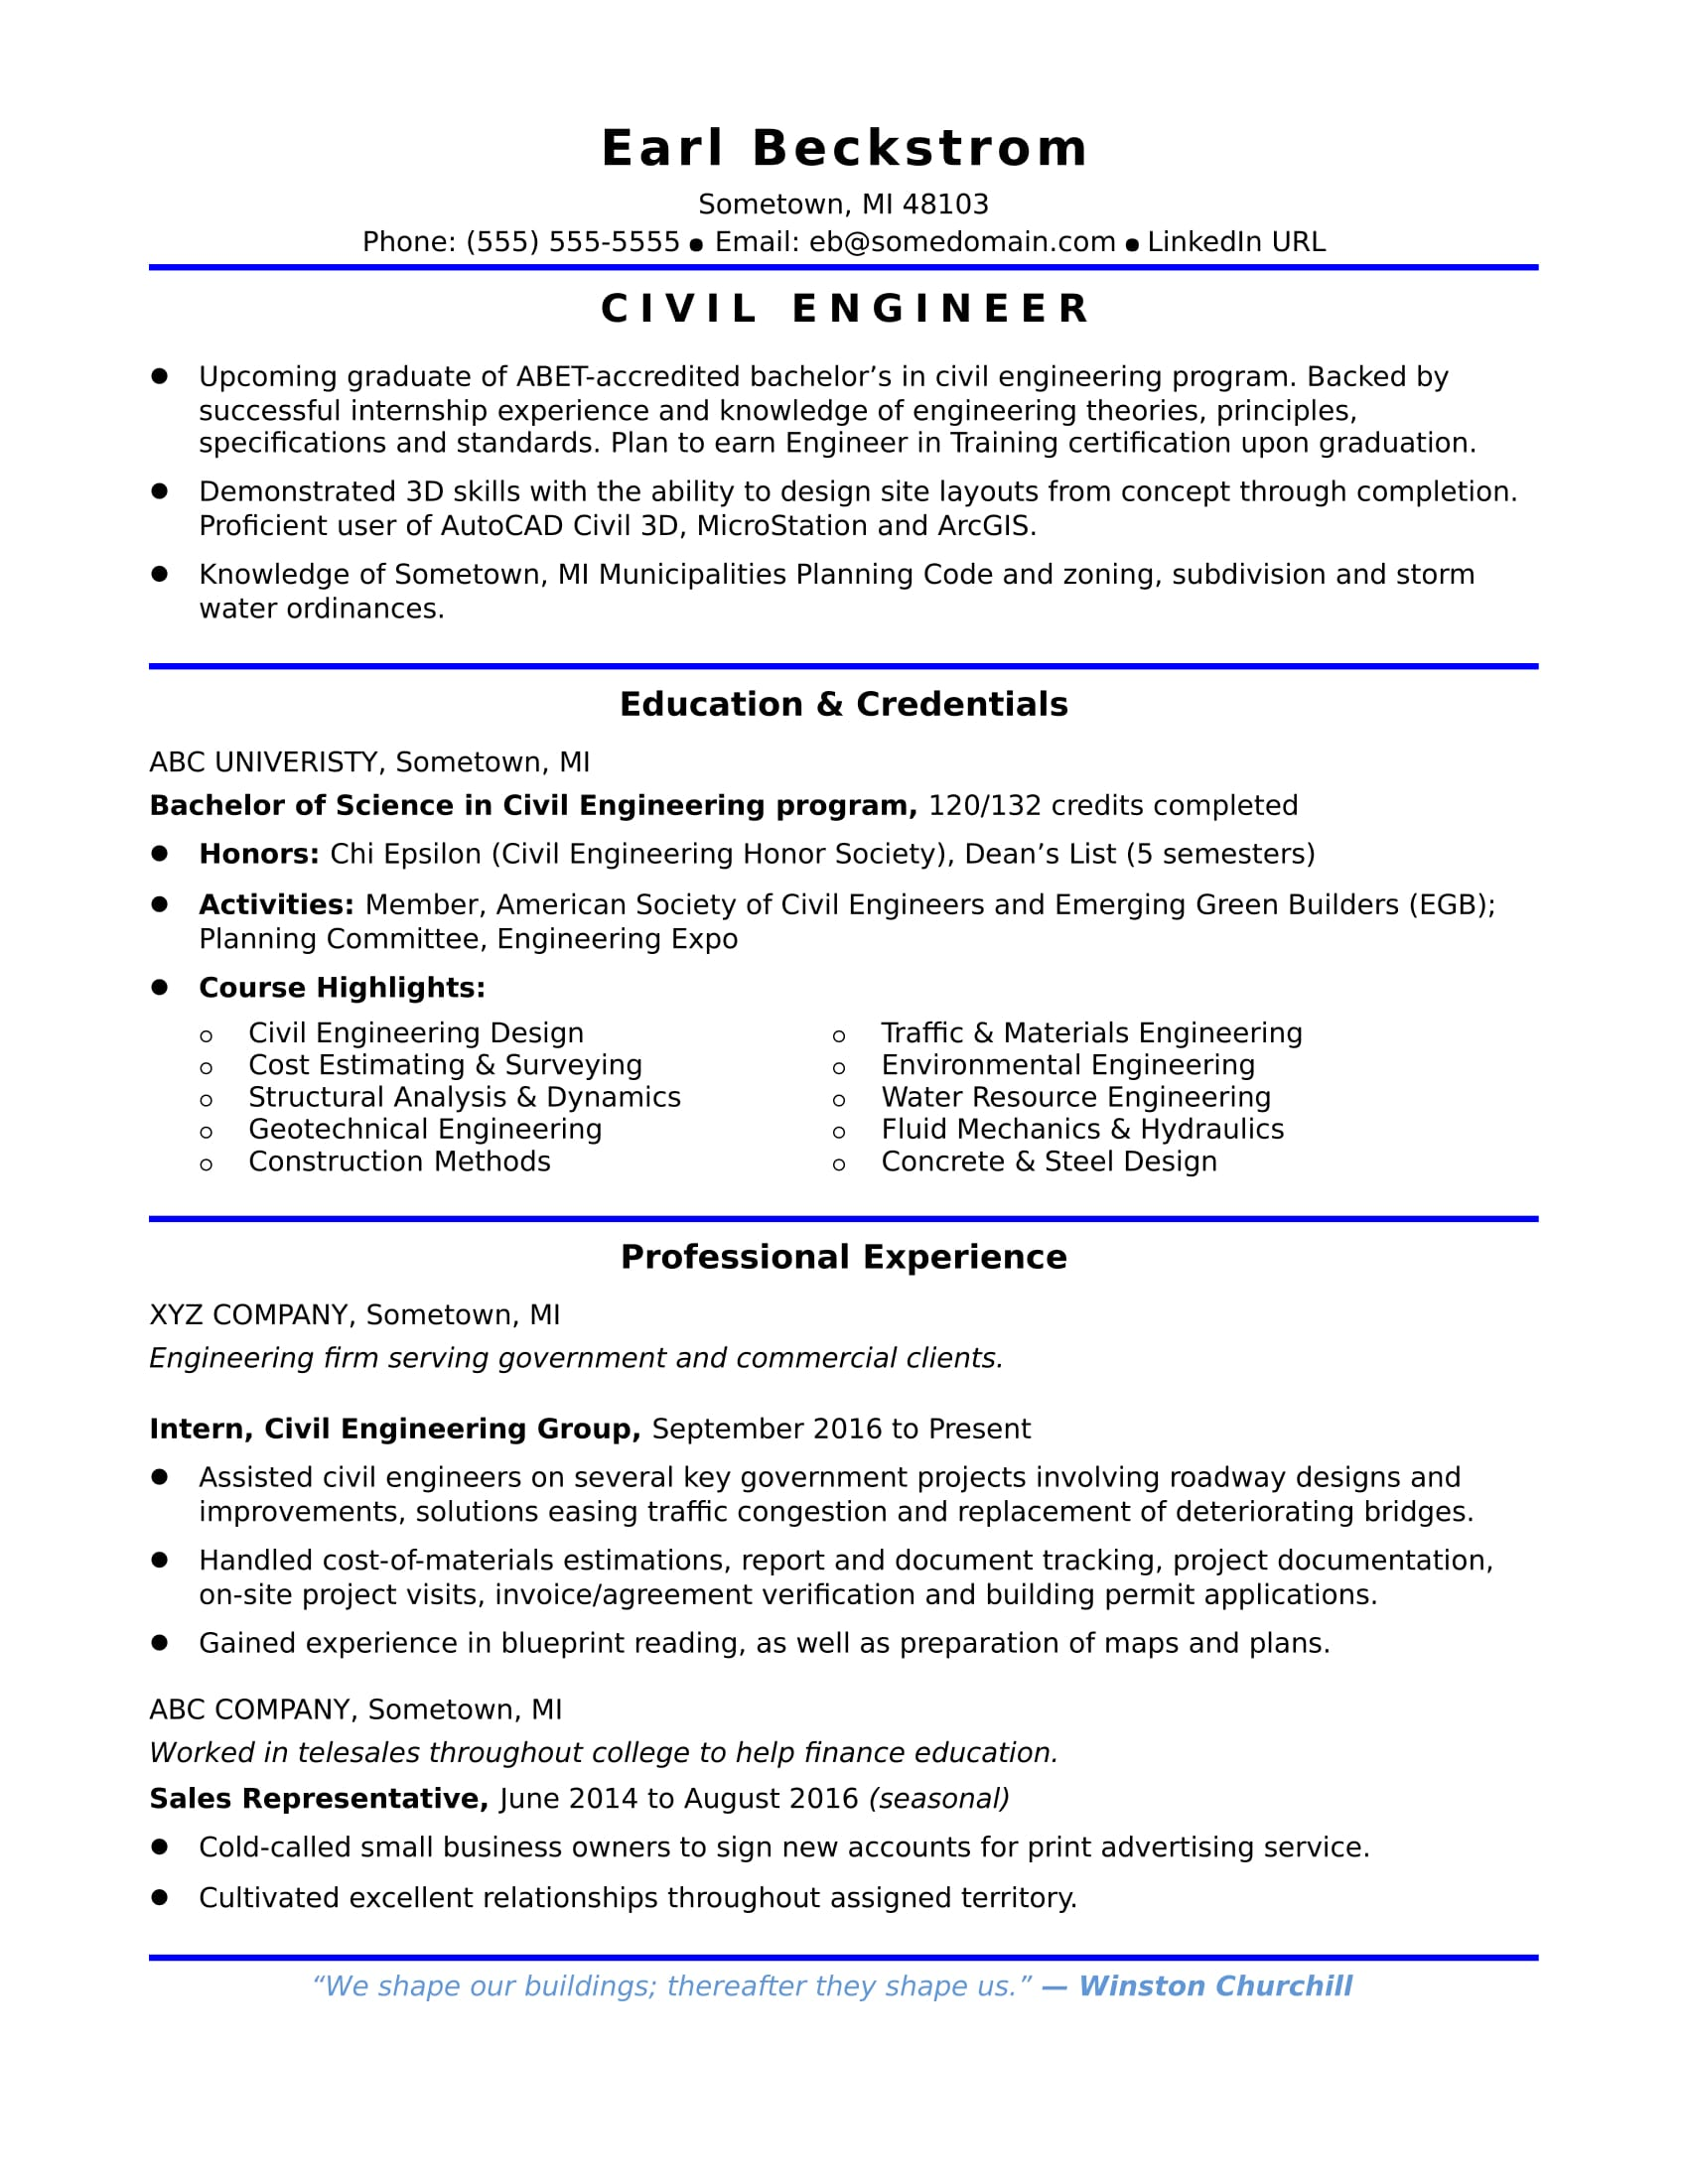 sample resume for an entry-level civil engineer | monster